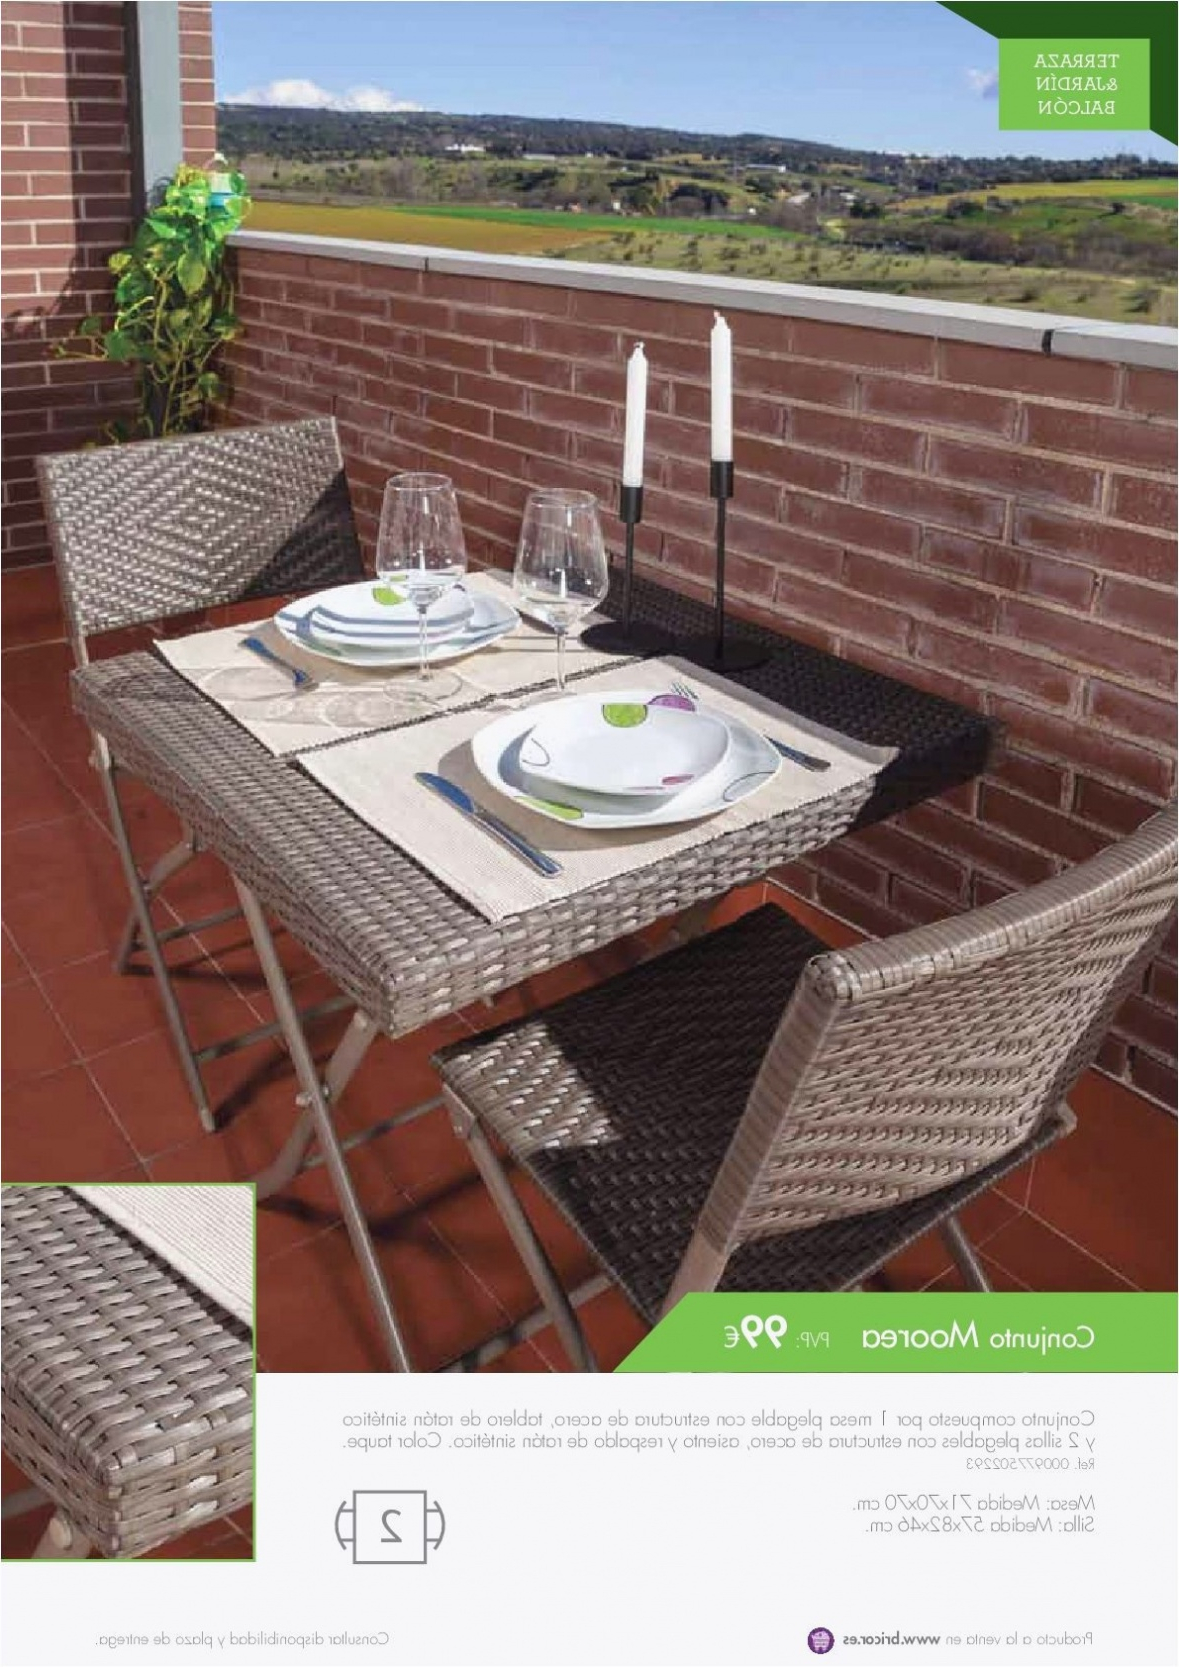 Mesa Plegable Bricor J7do Mesa Plegable Bricor Bogotaeslacumbre Inicio Mesas De Jardin